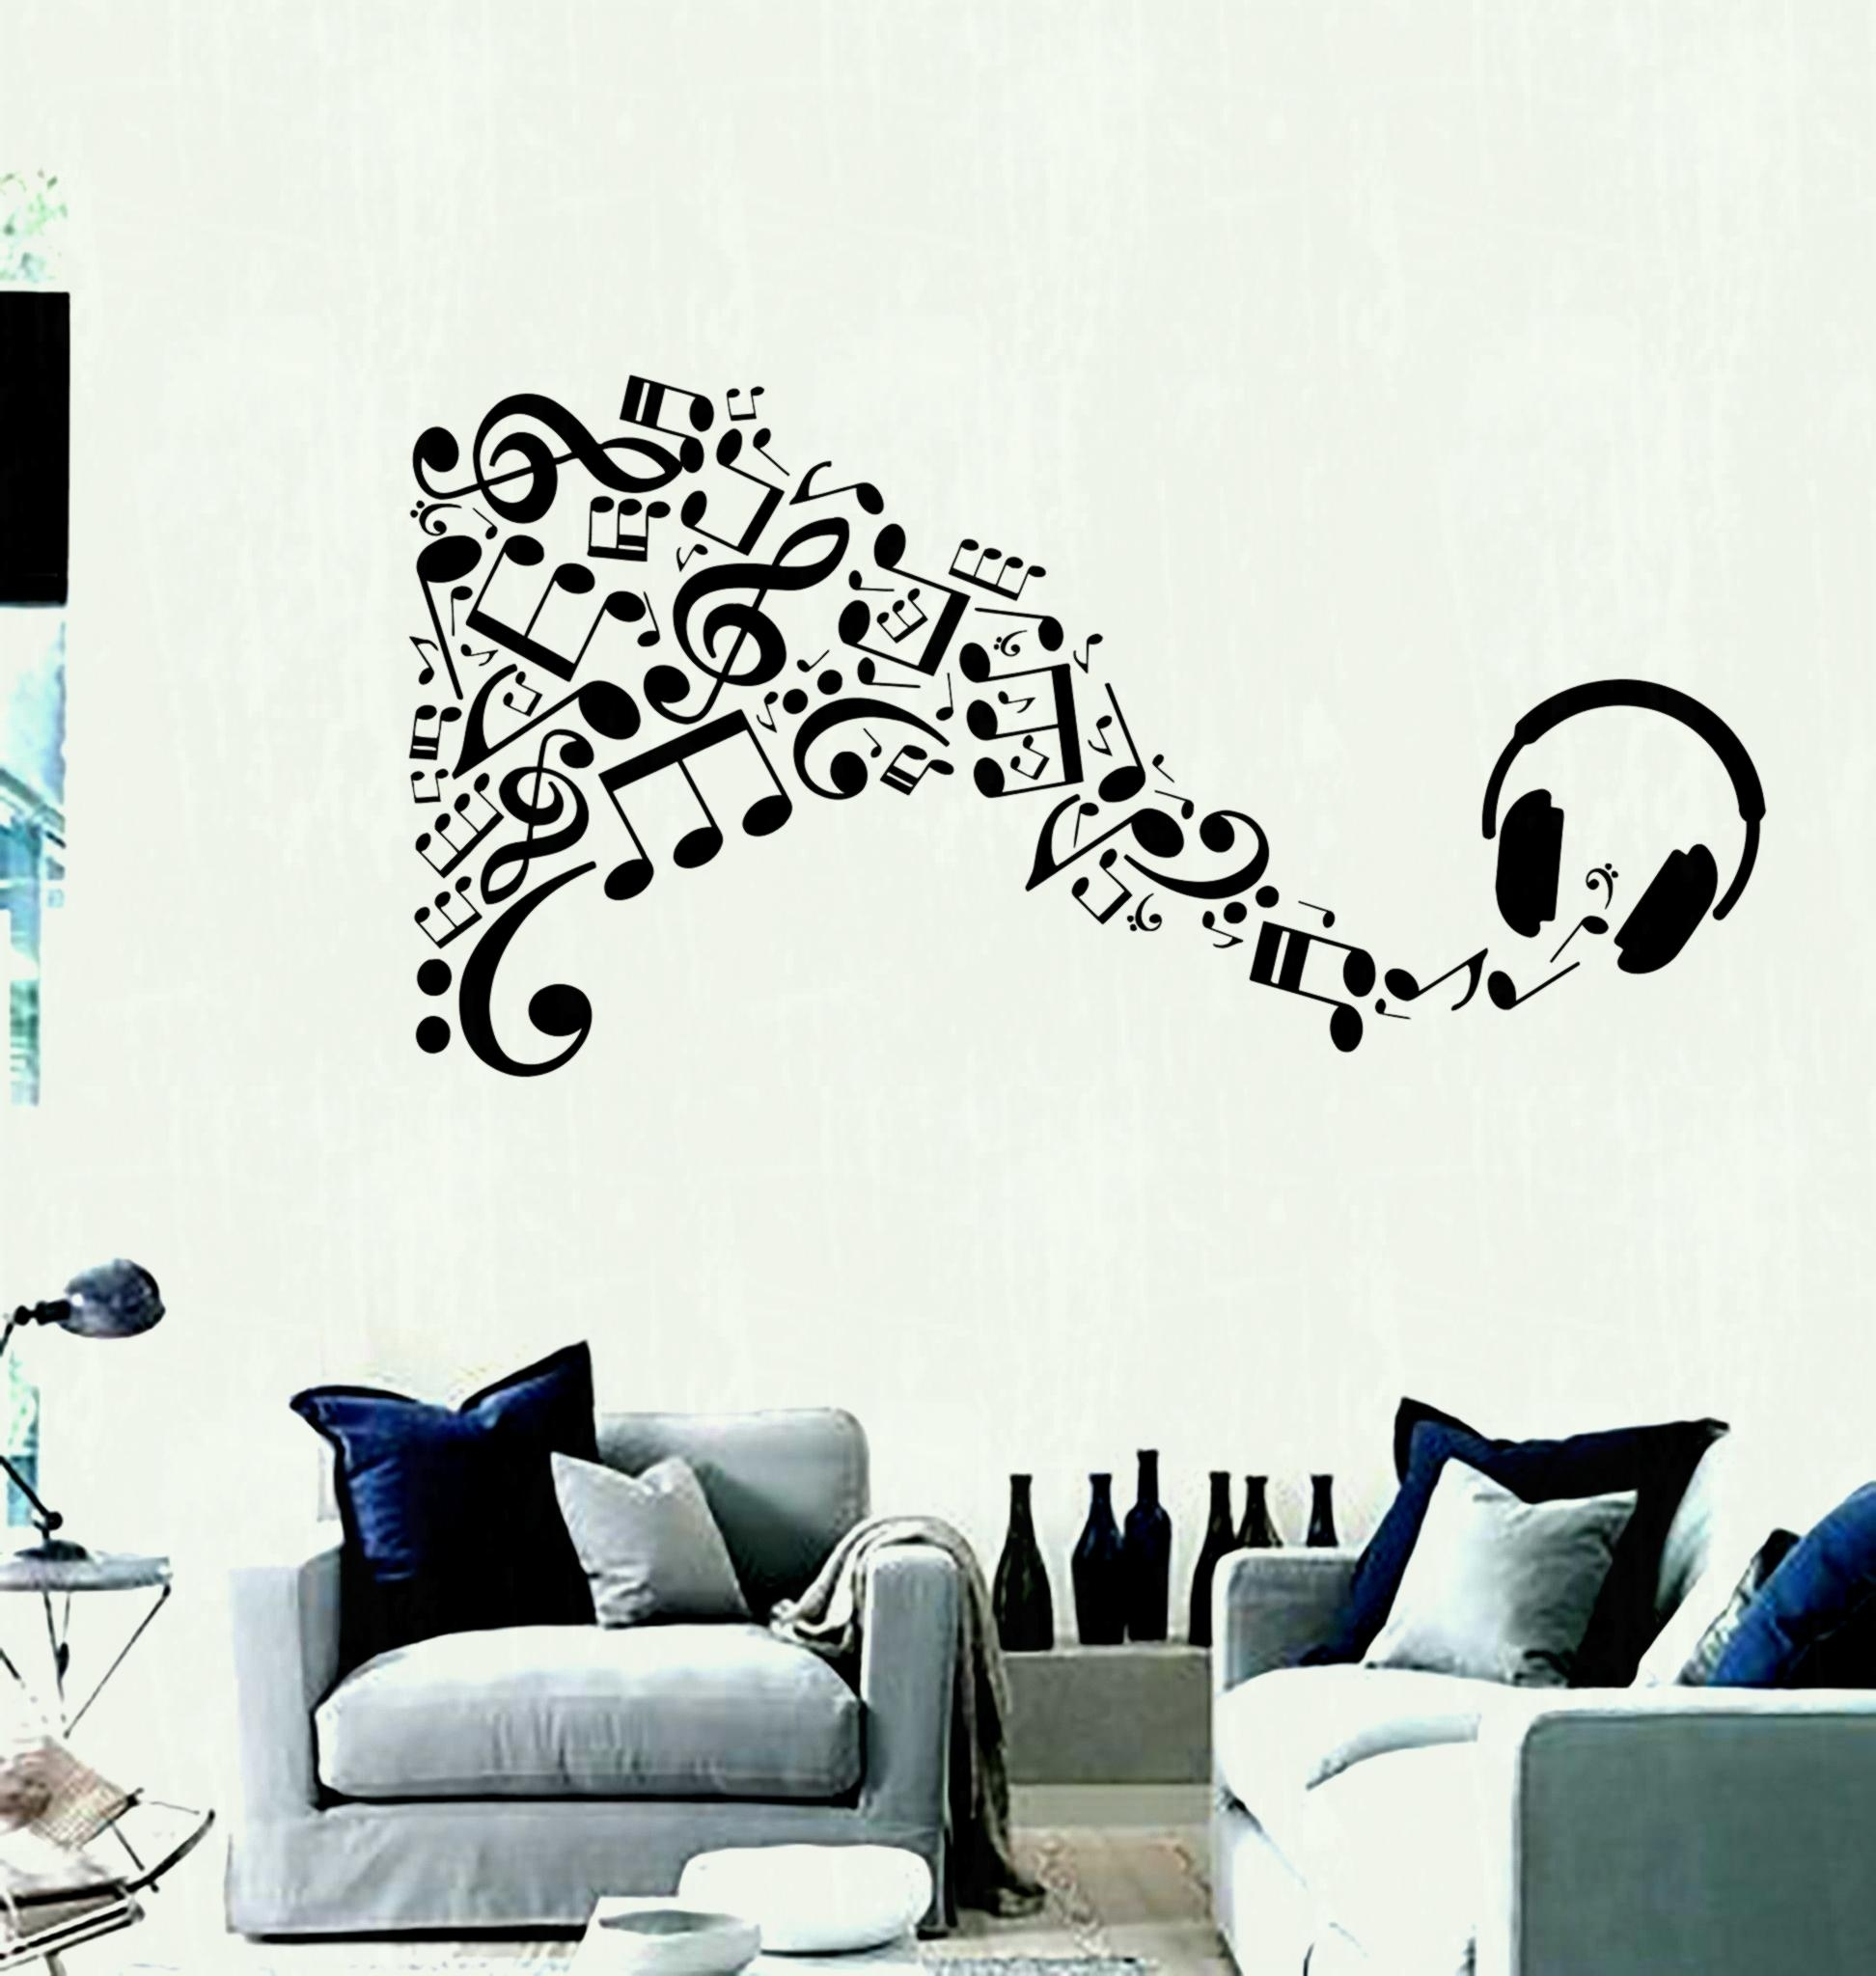 Living Room : Creative Painting Ideas For Walls With White Wall Within Most Recently Released Art For Walls (View 12 of 20)